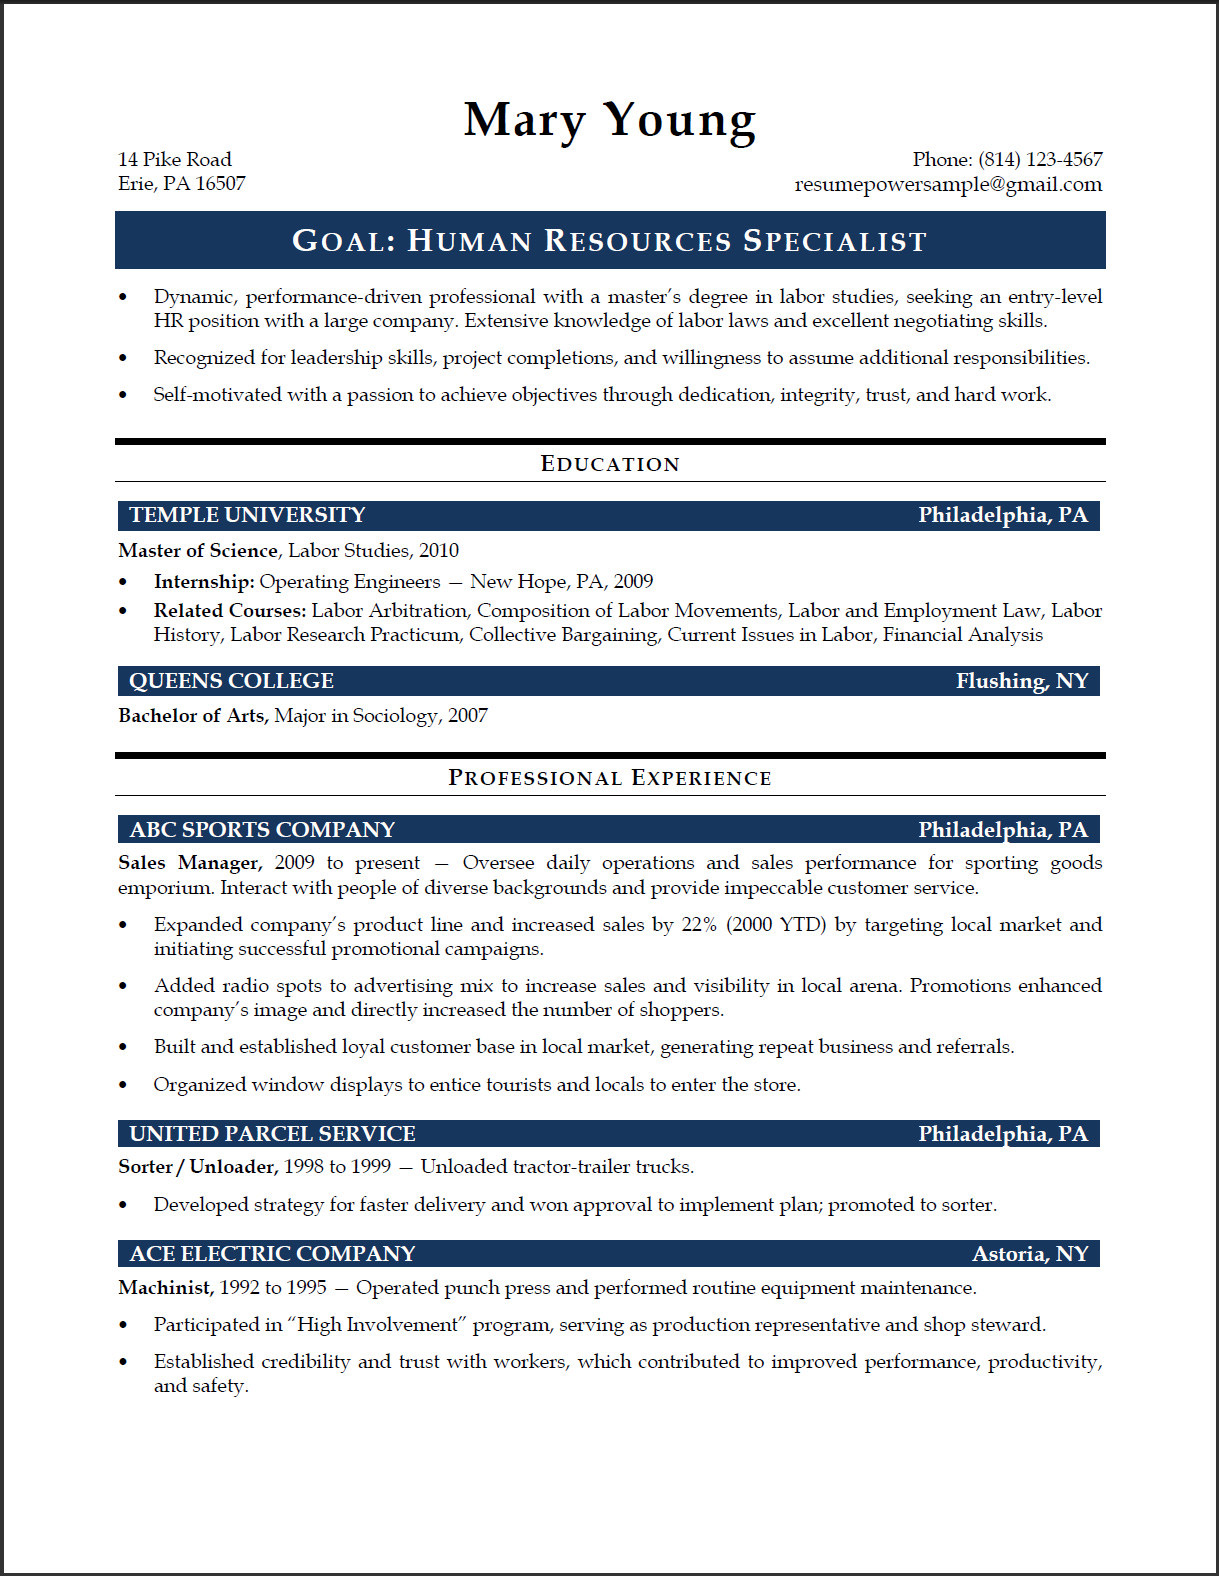 Elegant Human Resources Specialist Sample Resume